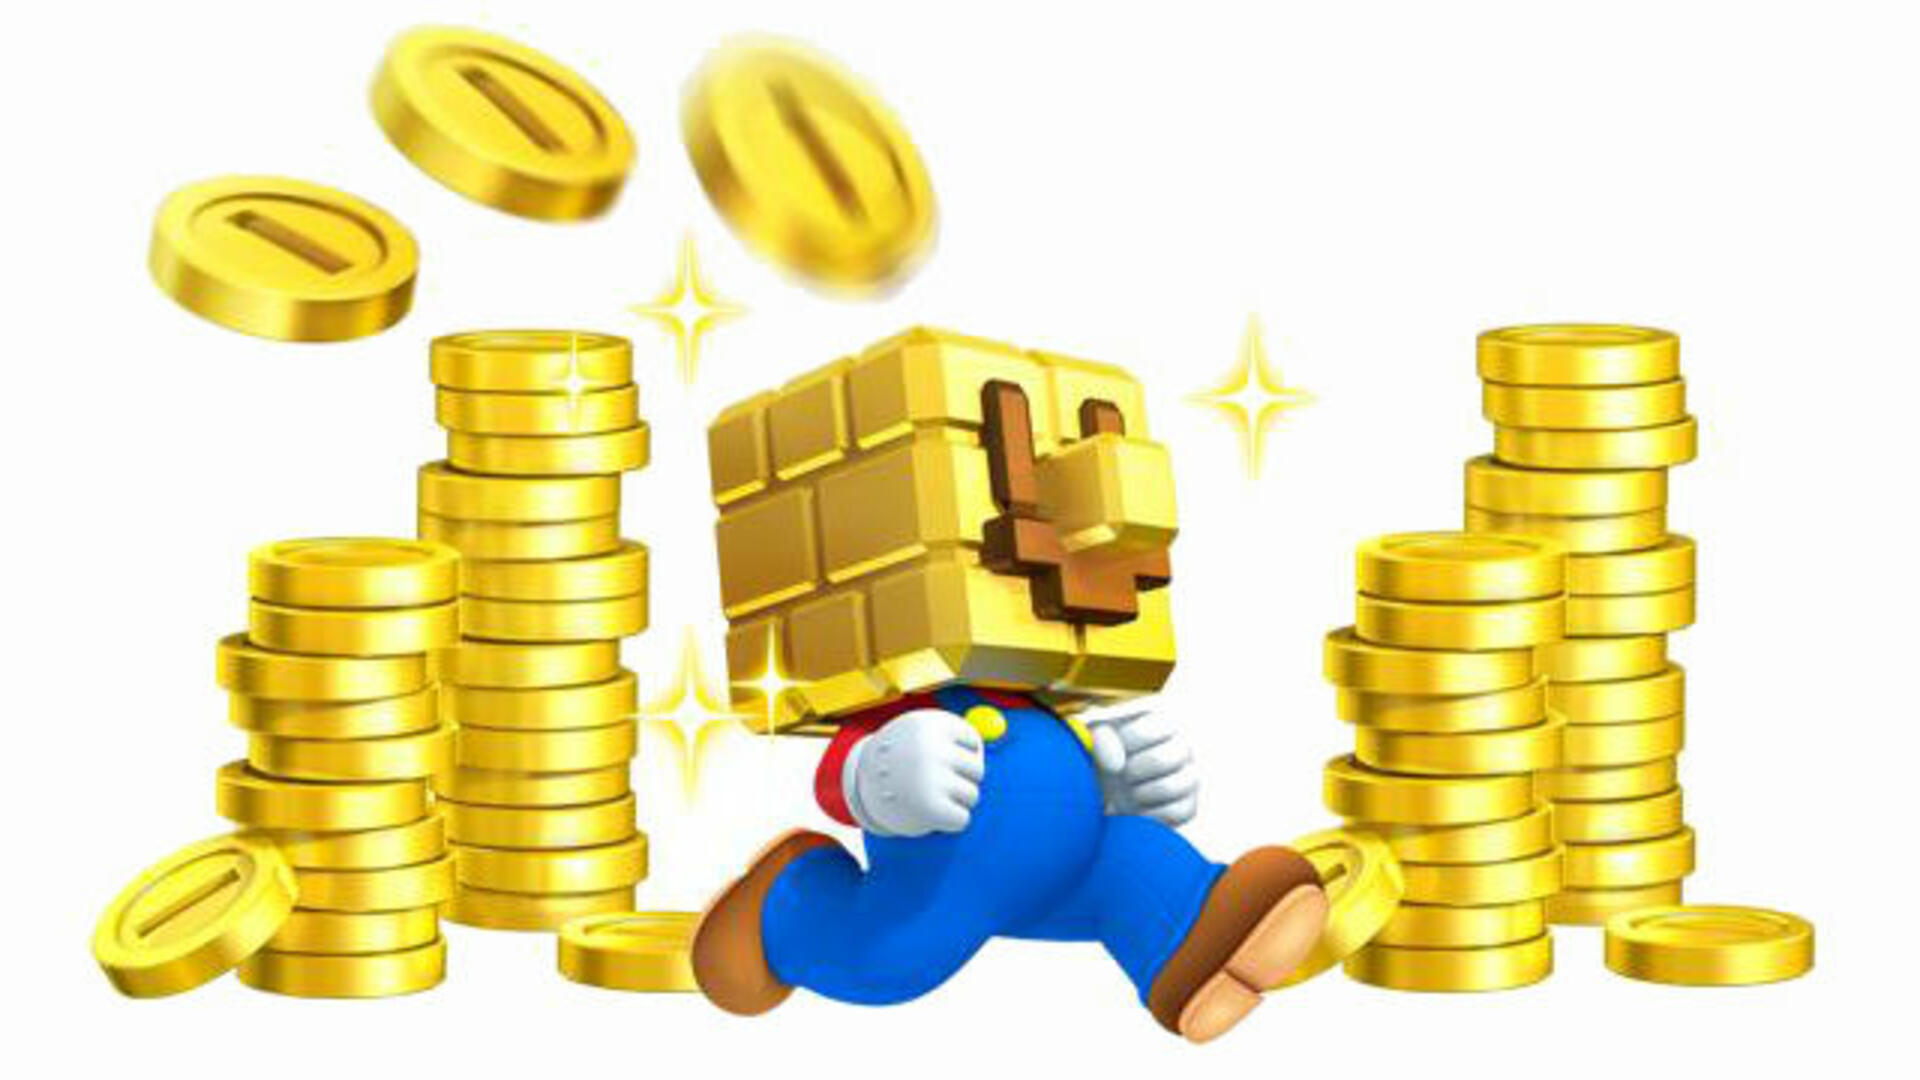 Nintendo's Revenues Skyrocket as the Switch Passes the Wii U's Lifetime Sales in 10 Months